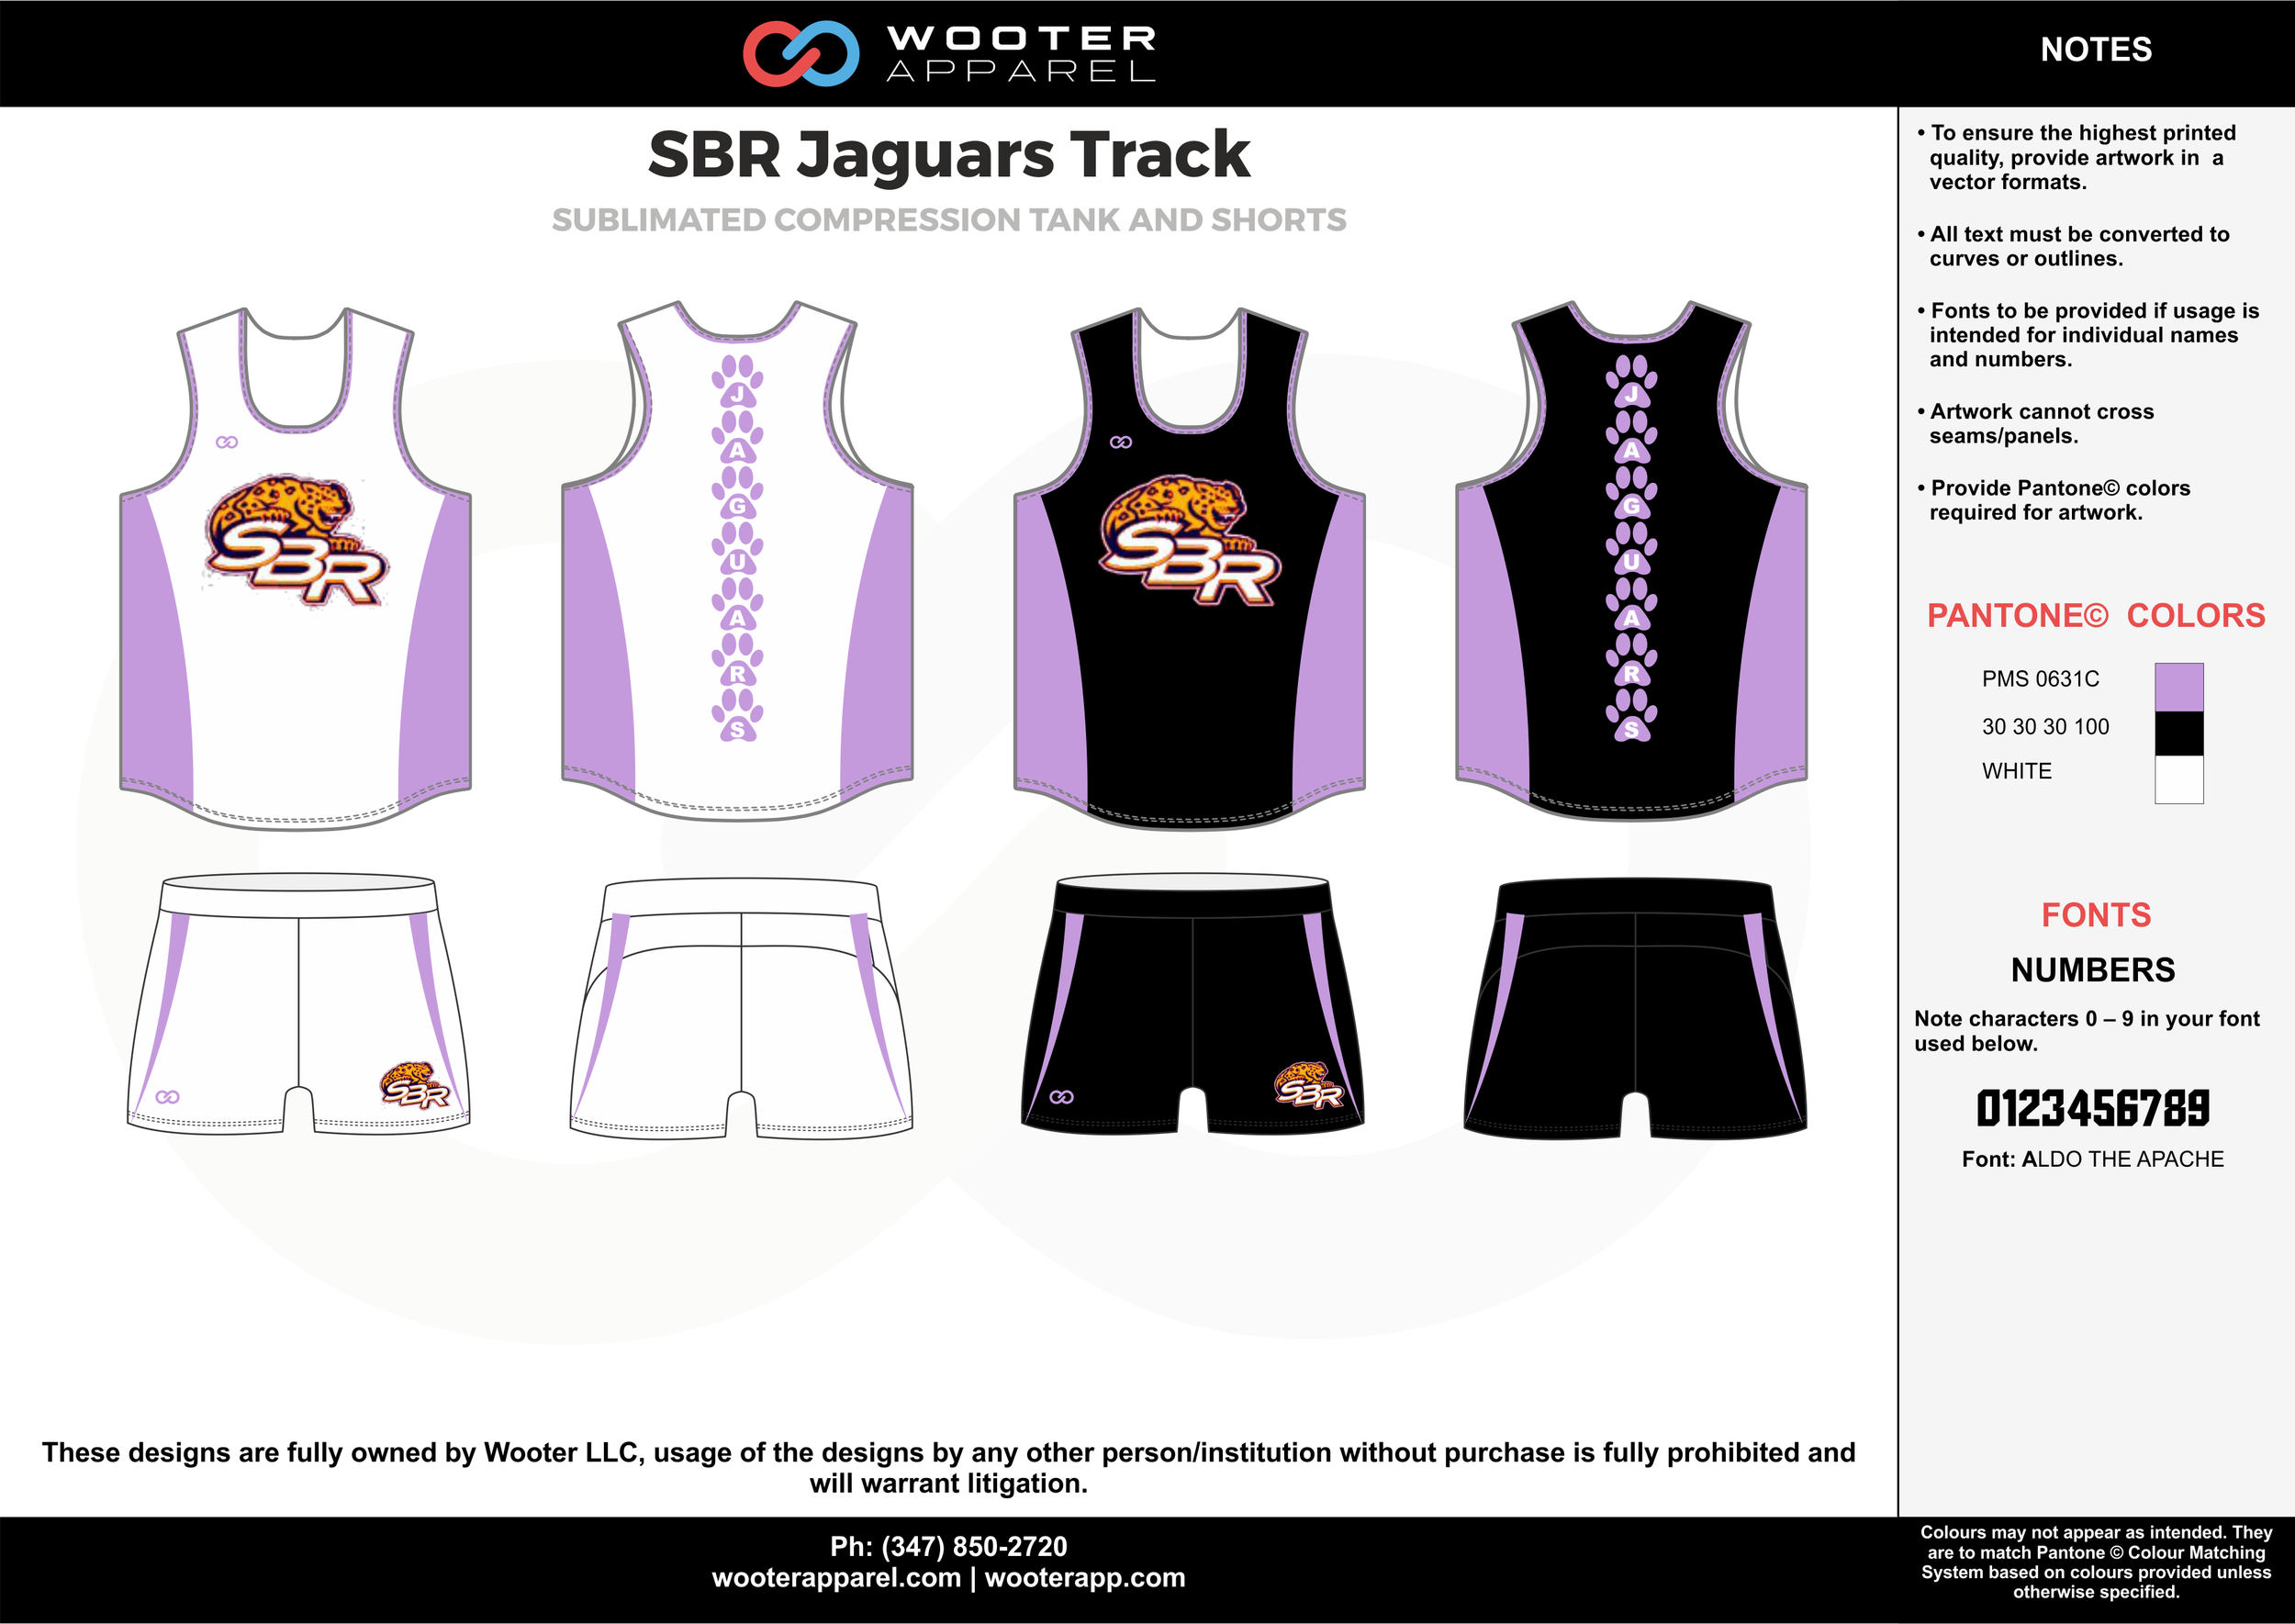 SBR Jaguars Track White Purple Yellow and Black Sublimated Compression Track Uniforms Tanks and Shorts